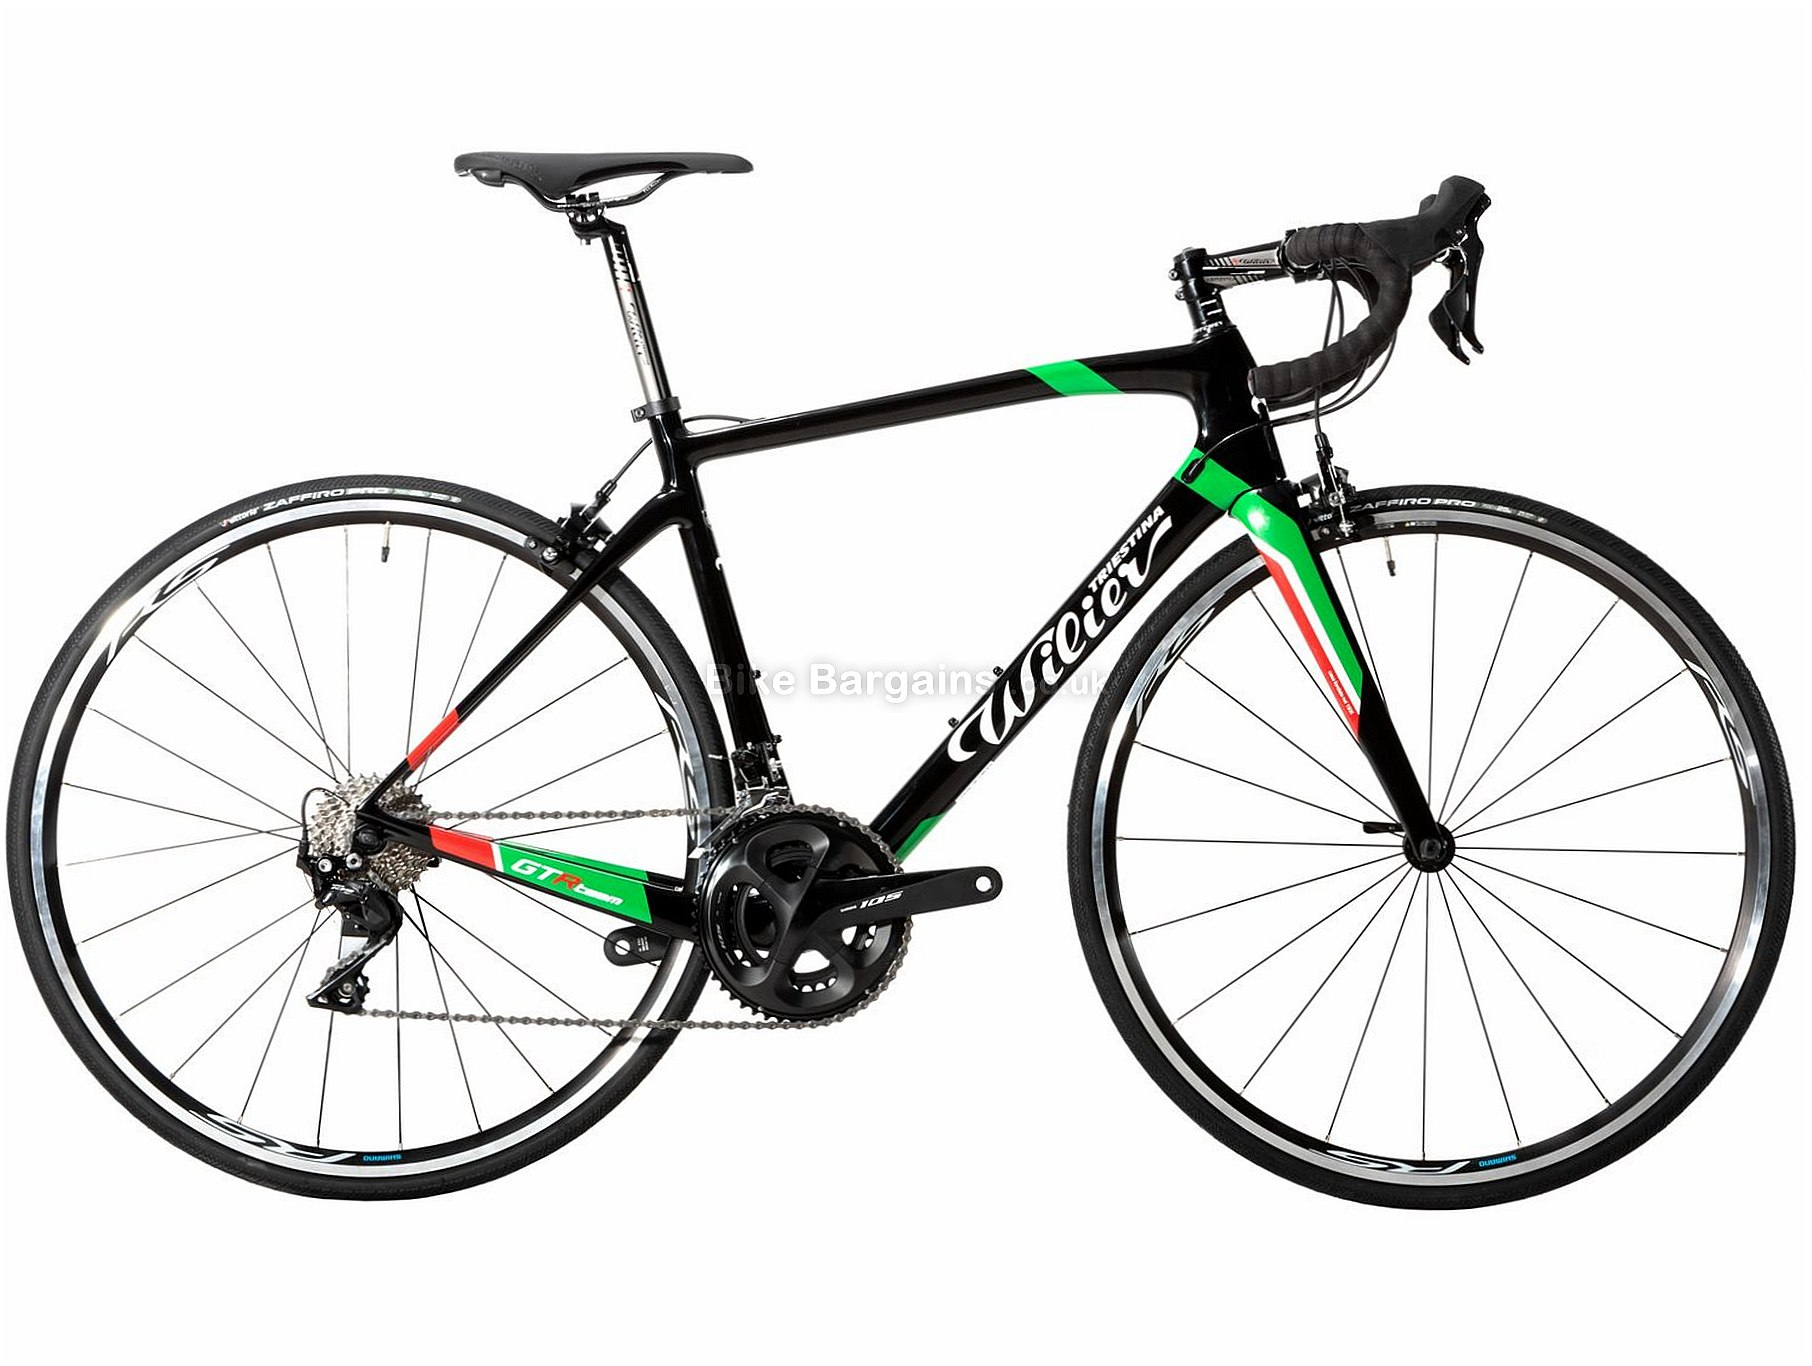 Wilier Gtr Team 105 Carbon Road Bike Was Sold For